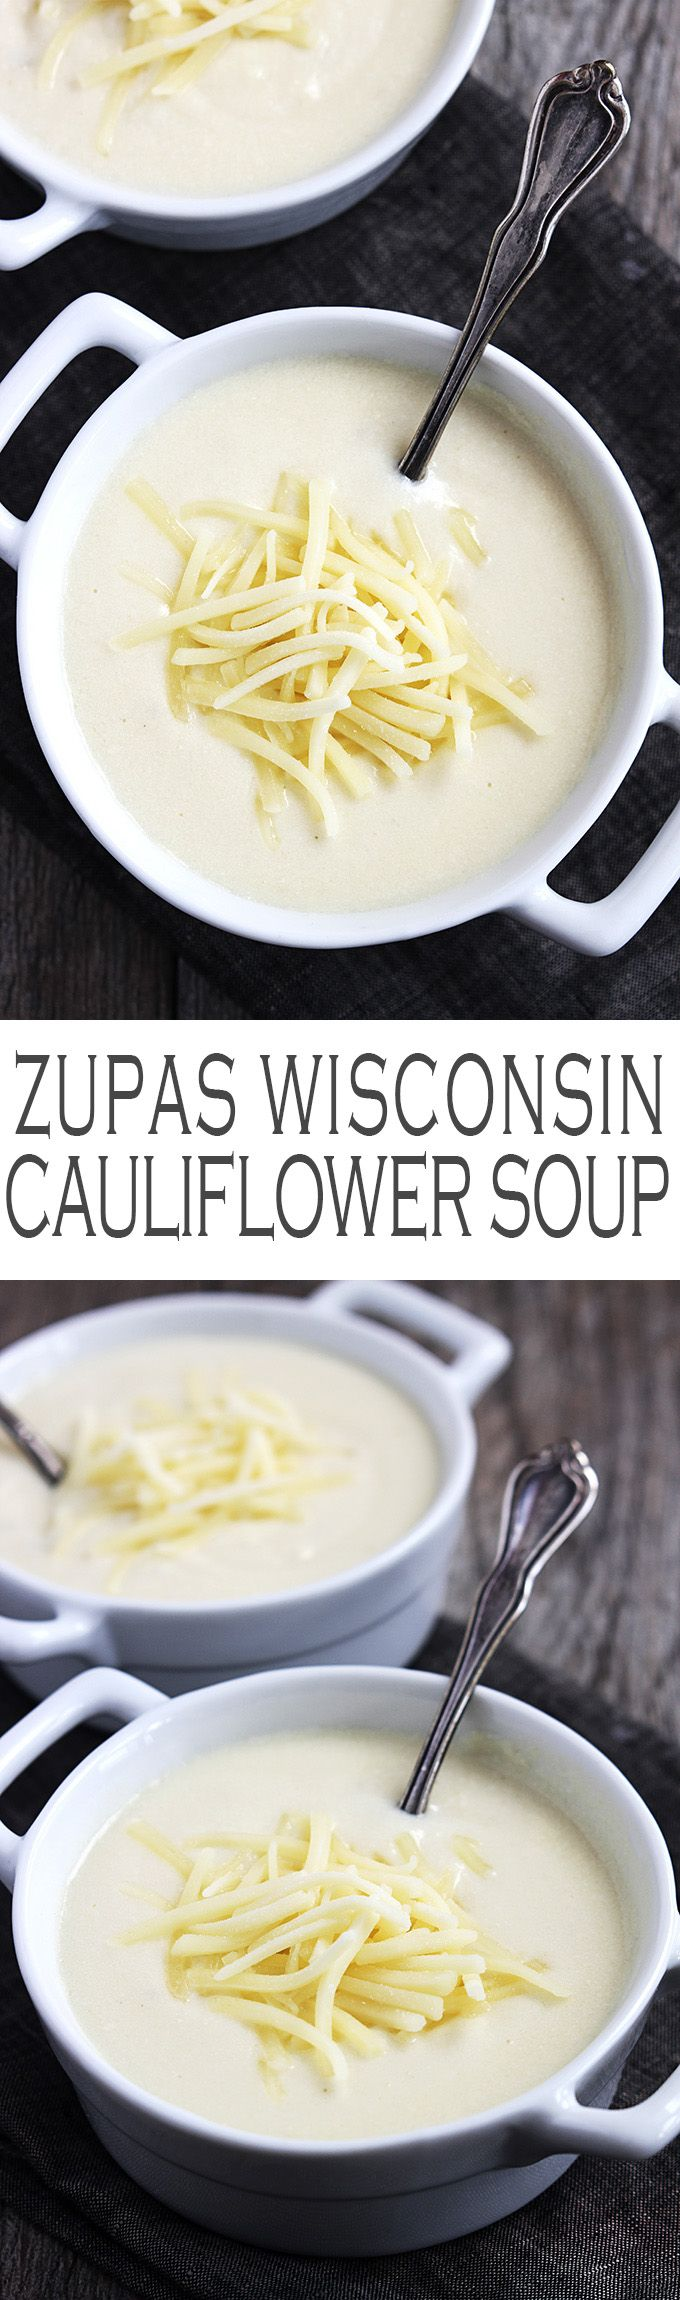 This soup from Zupas is so easy to make at home in less than 30 minutes. This stuff tastes so close to the original Zupas recipe it's crazy!